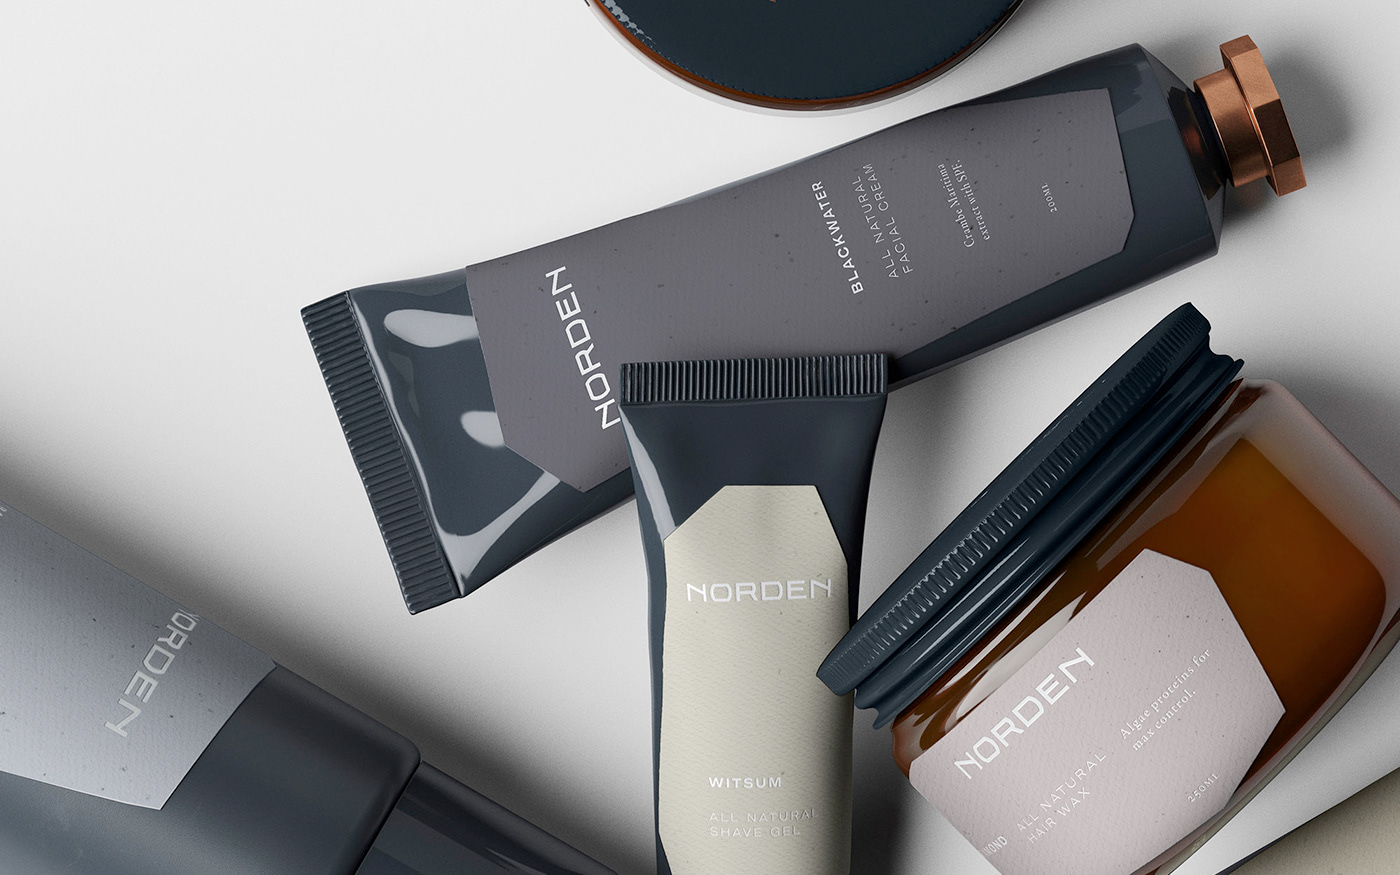 amsterdam grooming skincare cosmetics men Fashion  luxury Style Packaging Ethical